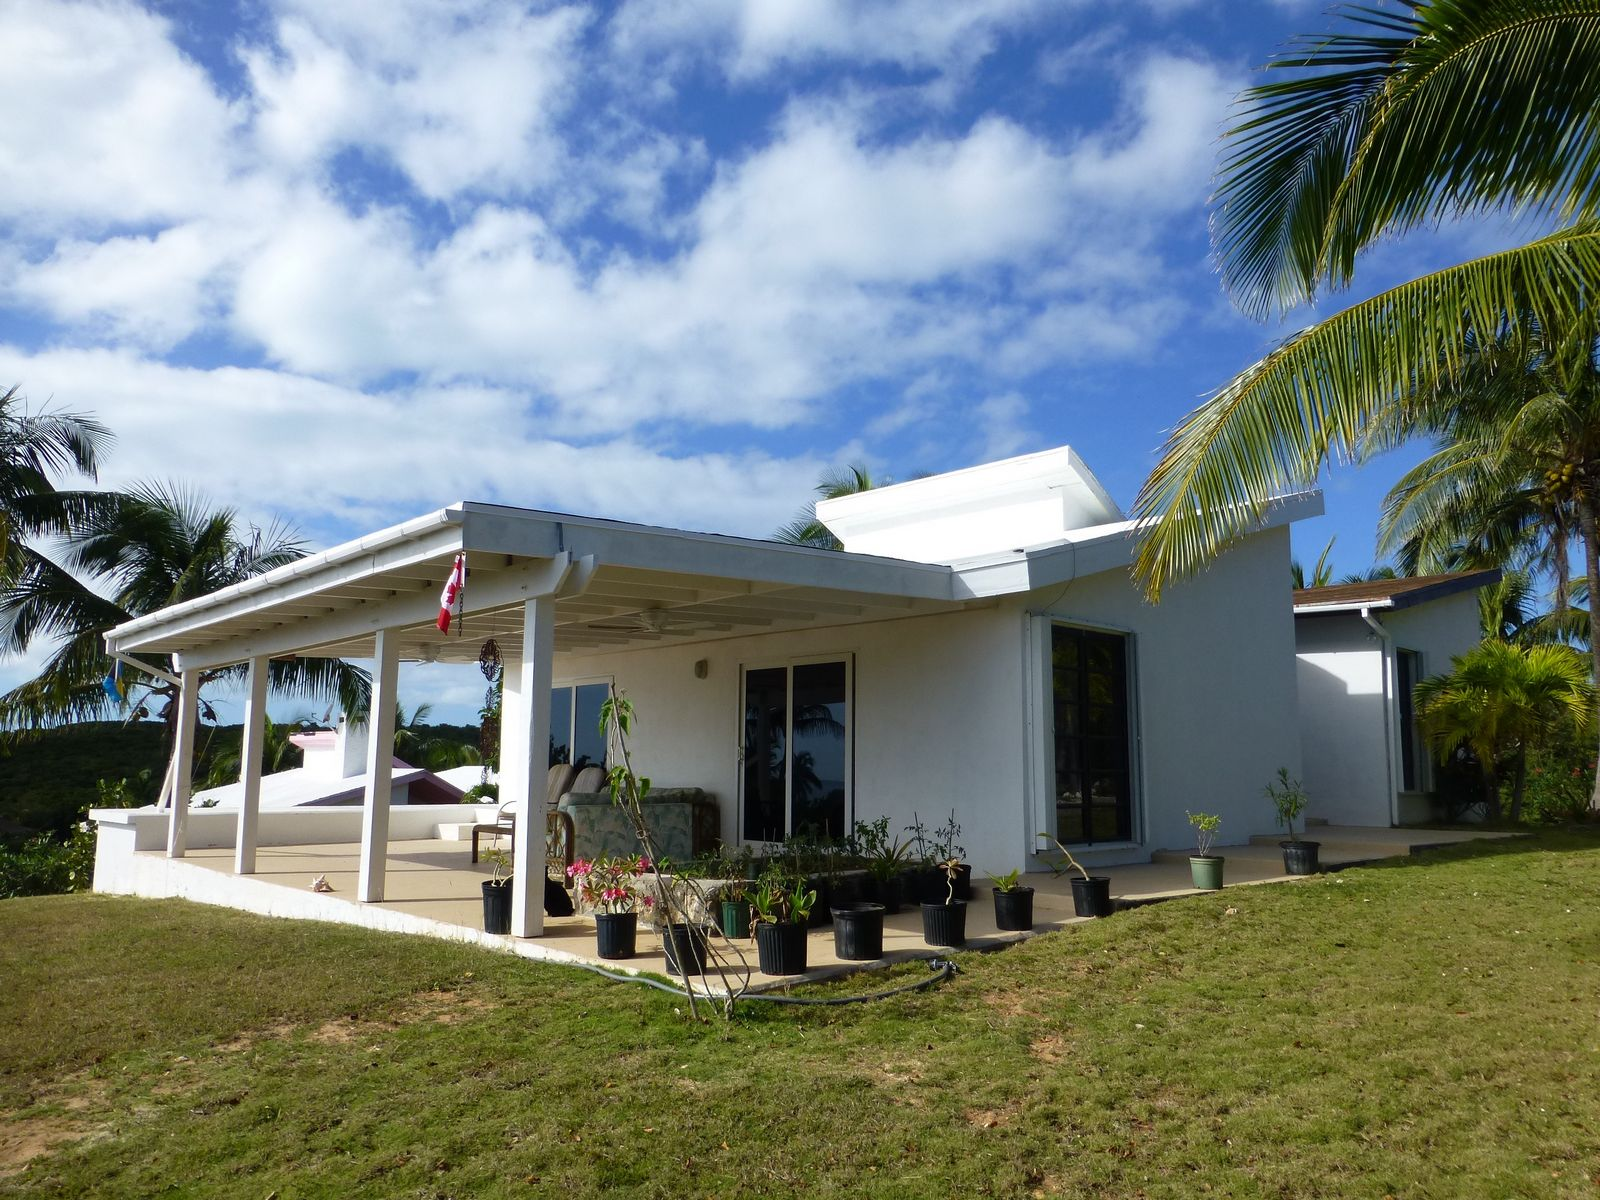 Single Family Home for Sale at Screen Saver Gregory Town, Eleuthera Bahamas